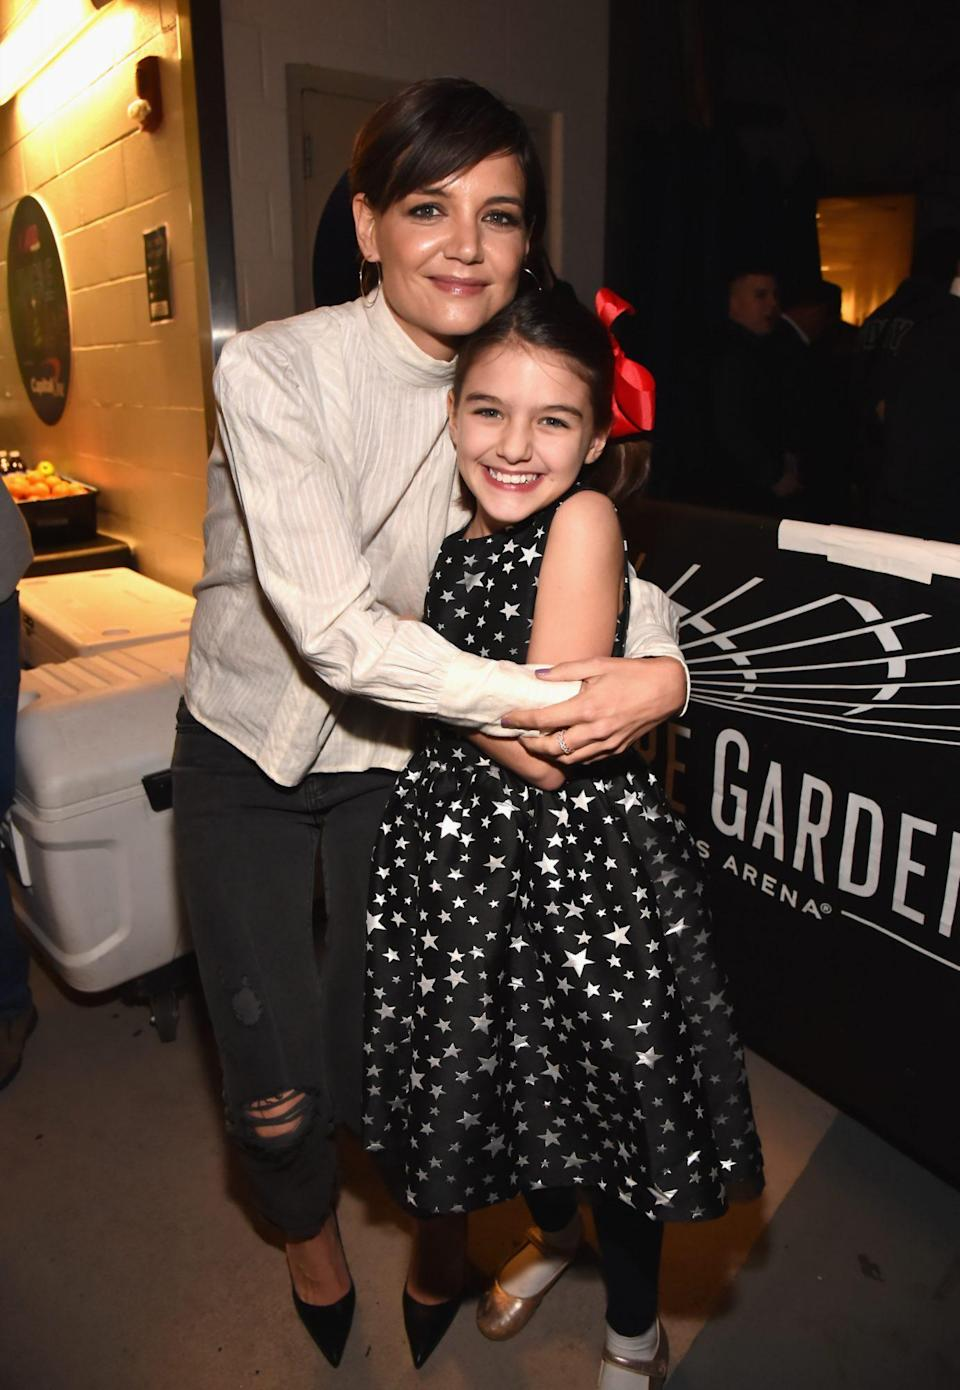 """<p>Holmes wrote about <a href=""""https://people.com/parents/katie-holmes-quarantine-daughter-suri-cruise/"""" rel=""""nofollow noopener"""" target=""""_blank"""" data-ylk=""""slk:how she's spent lockdown"""" class=""""link rapid-noclick-resp"""">how she's spent lockdown</a> with daughter <a href=""""https://people.com/tag/suri-cruise/"""" rel=""""nofollow noopener"""" target=""""_blank"""" data-ylk=""""slk:Suri Cruise"""" class=""""link rapid-noclick-resp"""">Suri Cruise</a> in an essay for <a href=""""https://www.vogue.com.au/culture/features/katie-holmes-writes-for-vogue-about-hope-positivity-and-embracing-the-simple-joys-in-life/image-gallery/8f1ffa29a59c8905b9e0ade0540b73bf"""" rel=""""nofollow noopener"""" target=""""_blank"""" data-ylk=""""slk:Vogue Australia's November issue"""" class=""""link rapid-noclick-resp""""><em>Vogue</em> Australia's November issue</a> - and how appreciative she has been for their quality time.</p> <p>""""Hobbies such as sewing, painting and writing became new hallmarks of satisfaction and having had time at home to just be. To listen,"""" she wrote. """"To live for a moment in time without the pressure of results and instead appreciate the natural rhythms of mother and daughter was the most precious gift.""""</p> <p>The <em>Dawson's Creek</em> alum recalled how, during isolation, she reinforced her mantra to be more present in her daily life.</p> <p>""""During this time of uncertainty, remembering to be creative and positive has been something I have tried to keep at the forefront of my mind,"""" Holmes wrote. """"Throughout this experience the through-line for me has been a heightened awareness of each moment and really taking it in and appreciating it.""""</p>"""